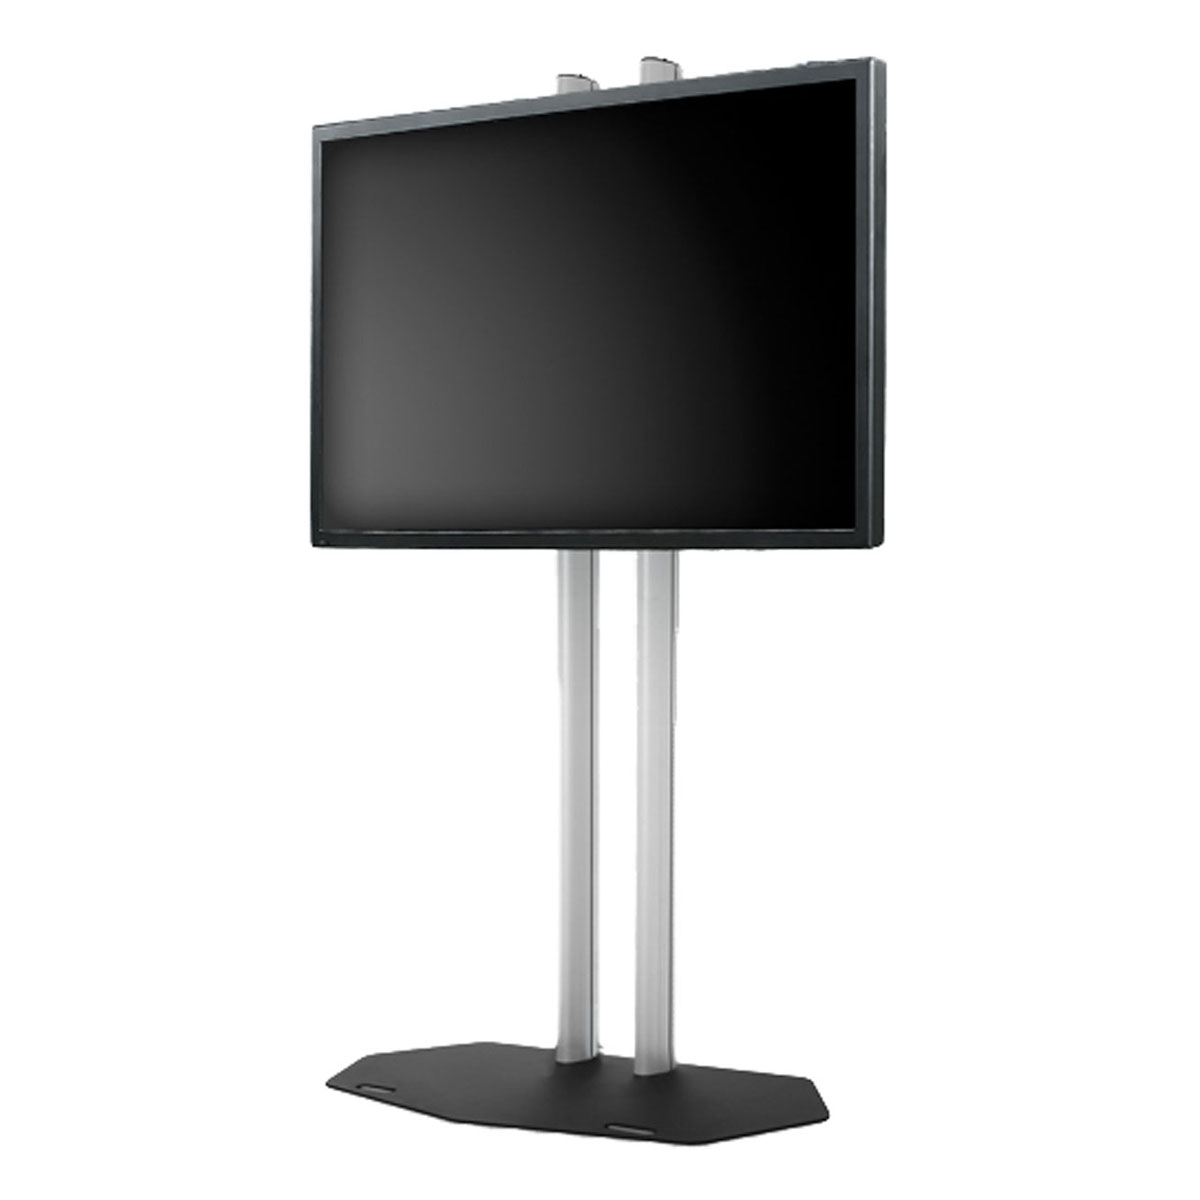 Audipack design stand 700 series